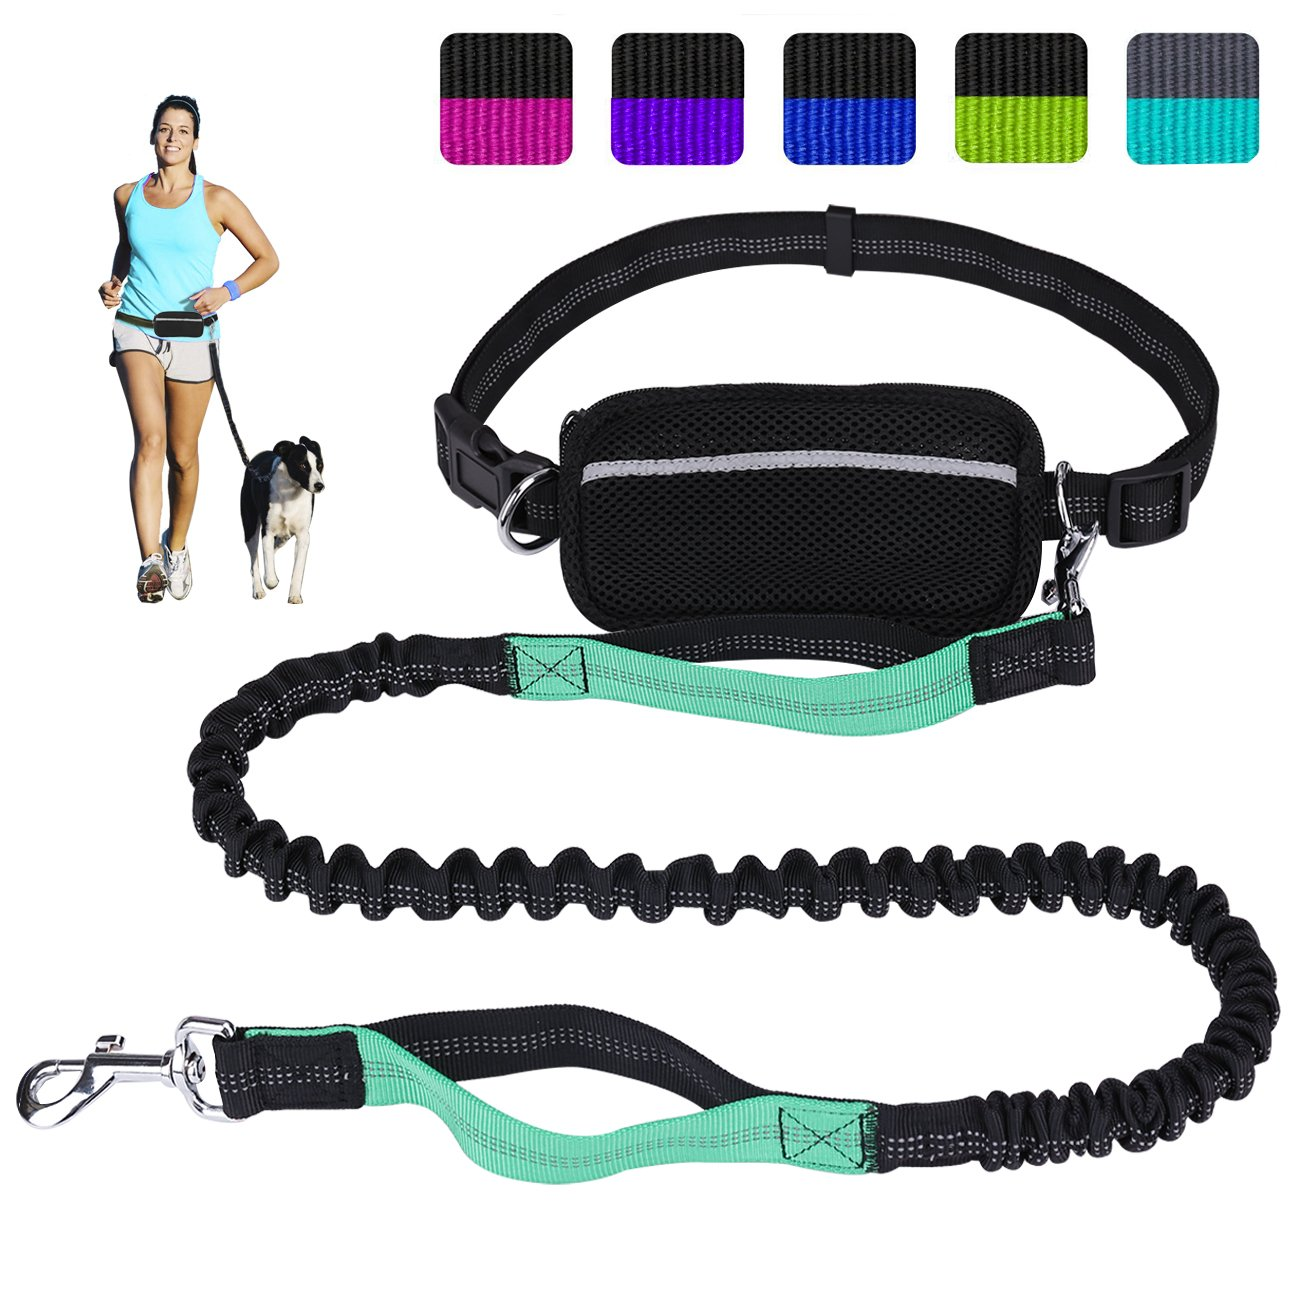 LANNEY Hands Free Dog Leash for Running Walking Training Hiking, Dual-Handle Reflective Bungee, Poop Bag Dispenser Pouch…